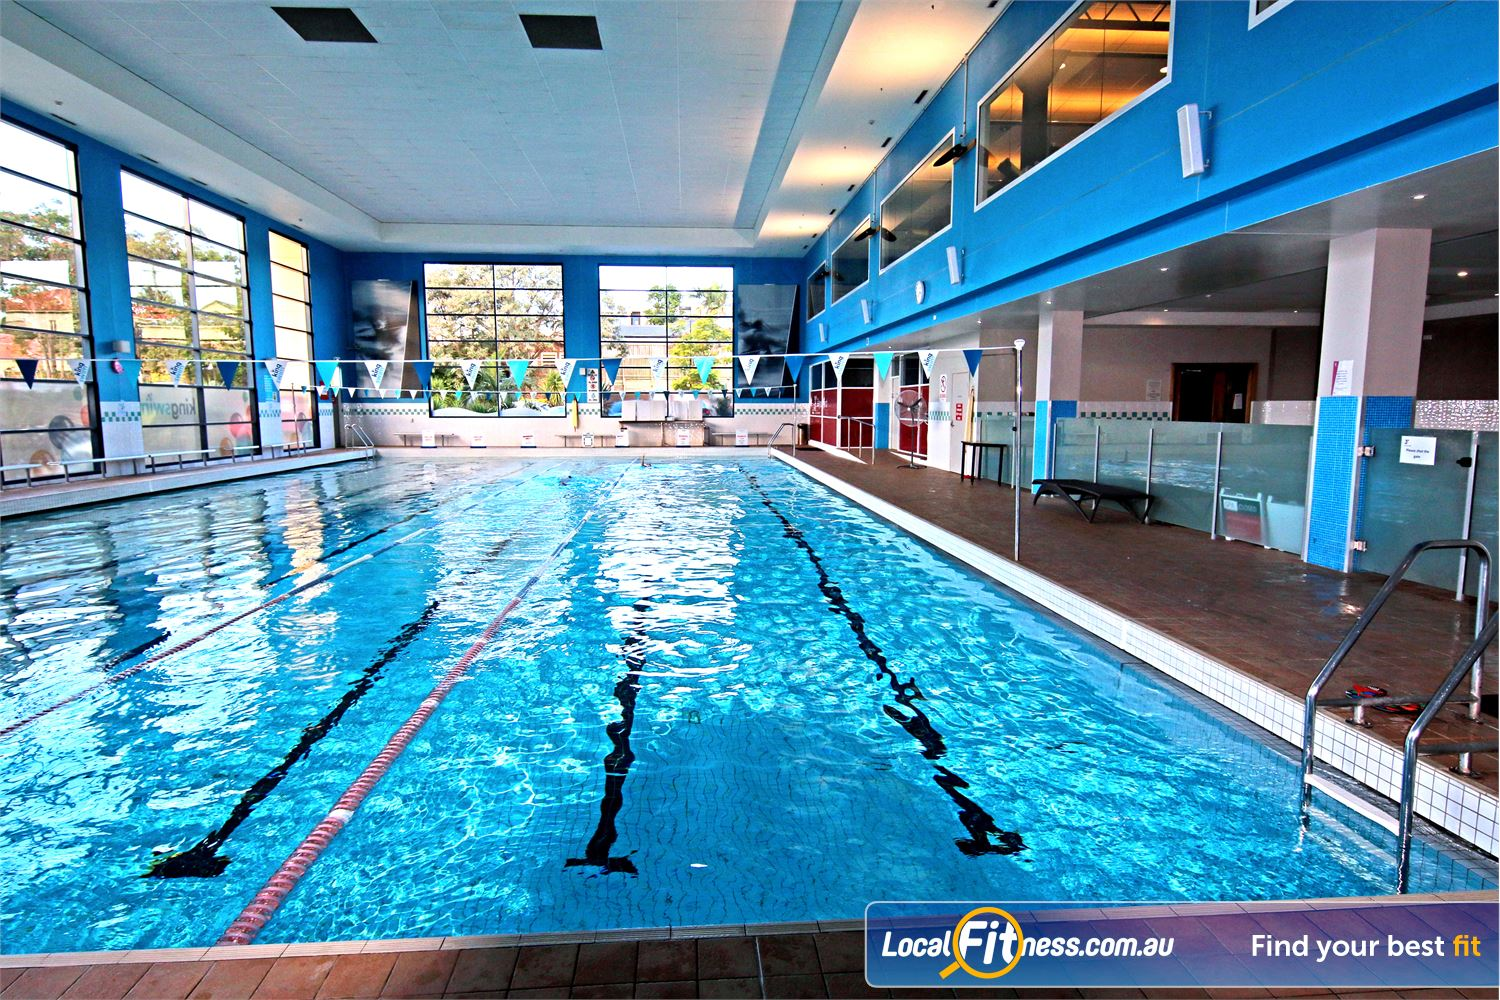 Fitness First Carindale Enjoy lap swimming or our range of aqua classes.